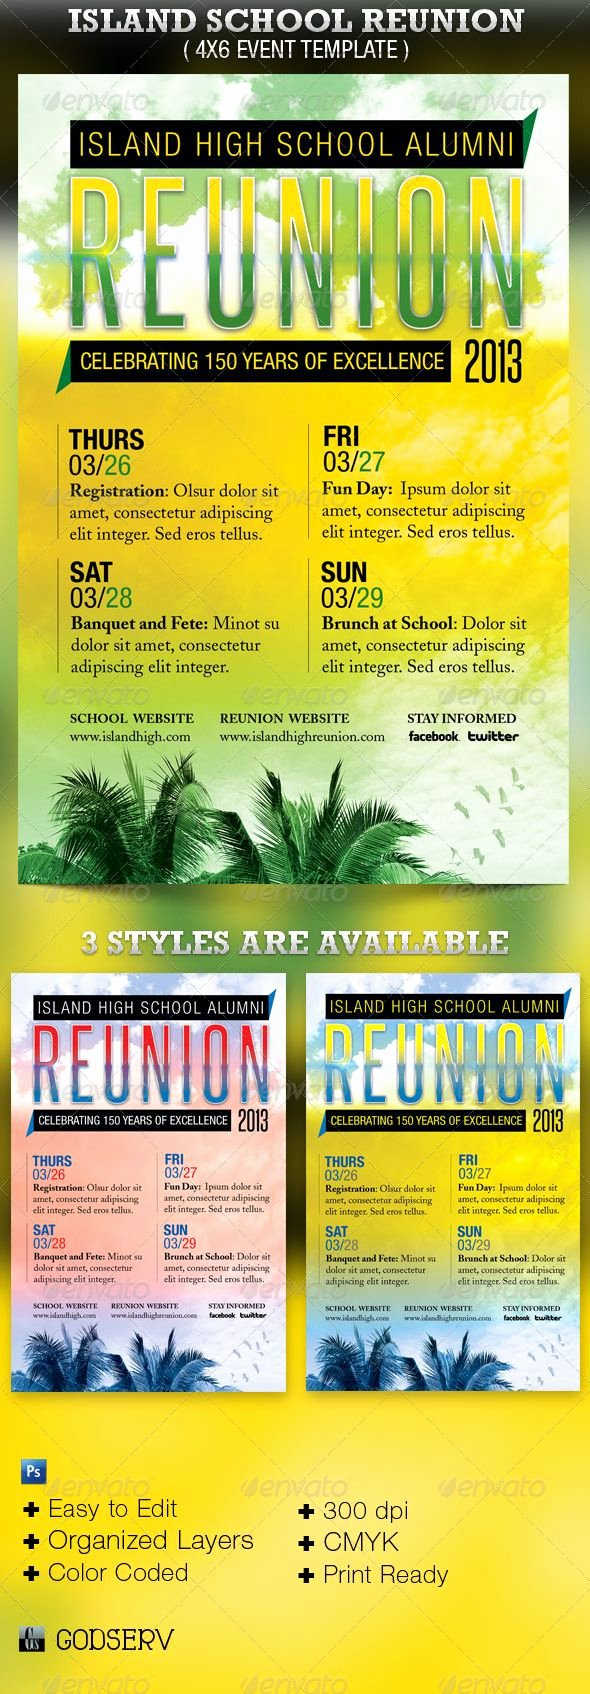 Family Reunion Flyer Templates Lovely island School Reunion Flyer Template $6 00